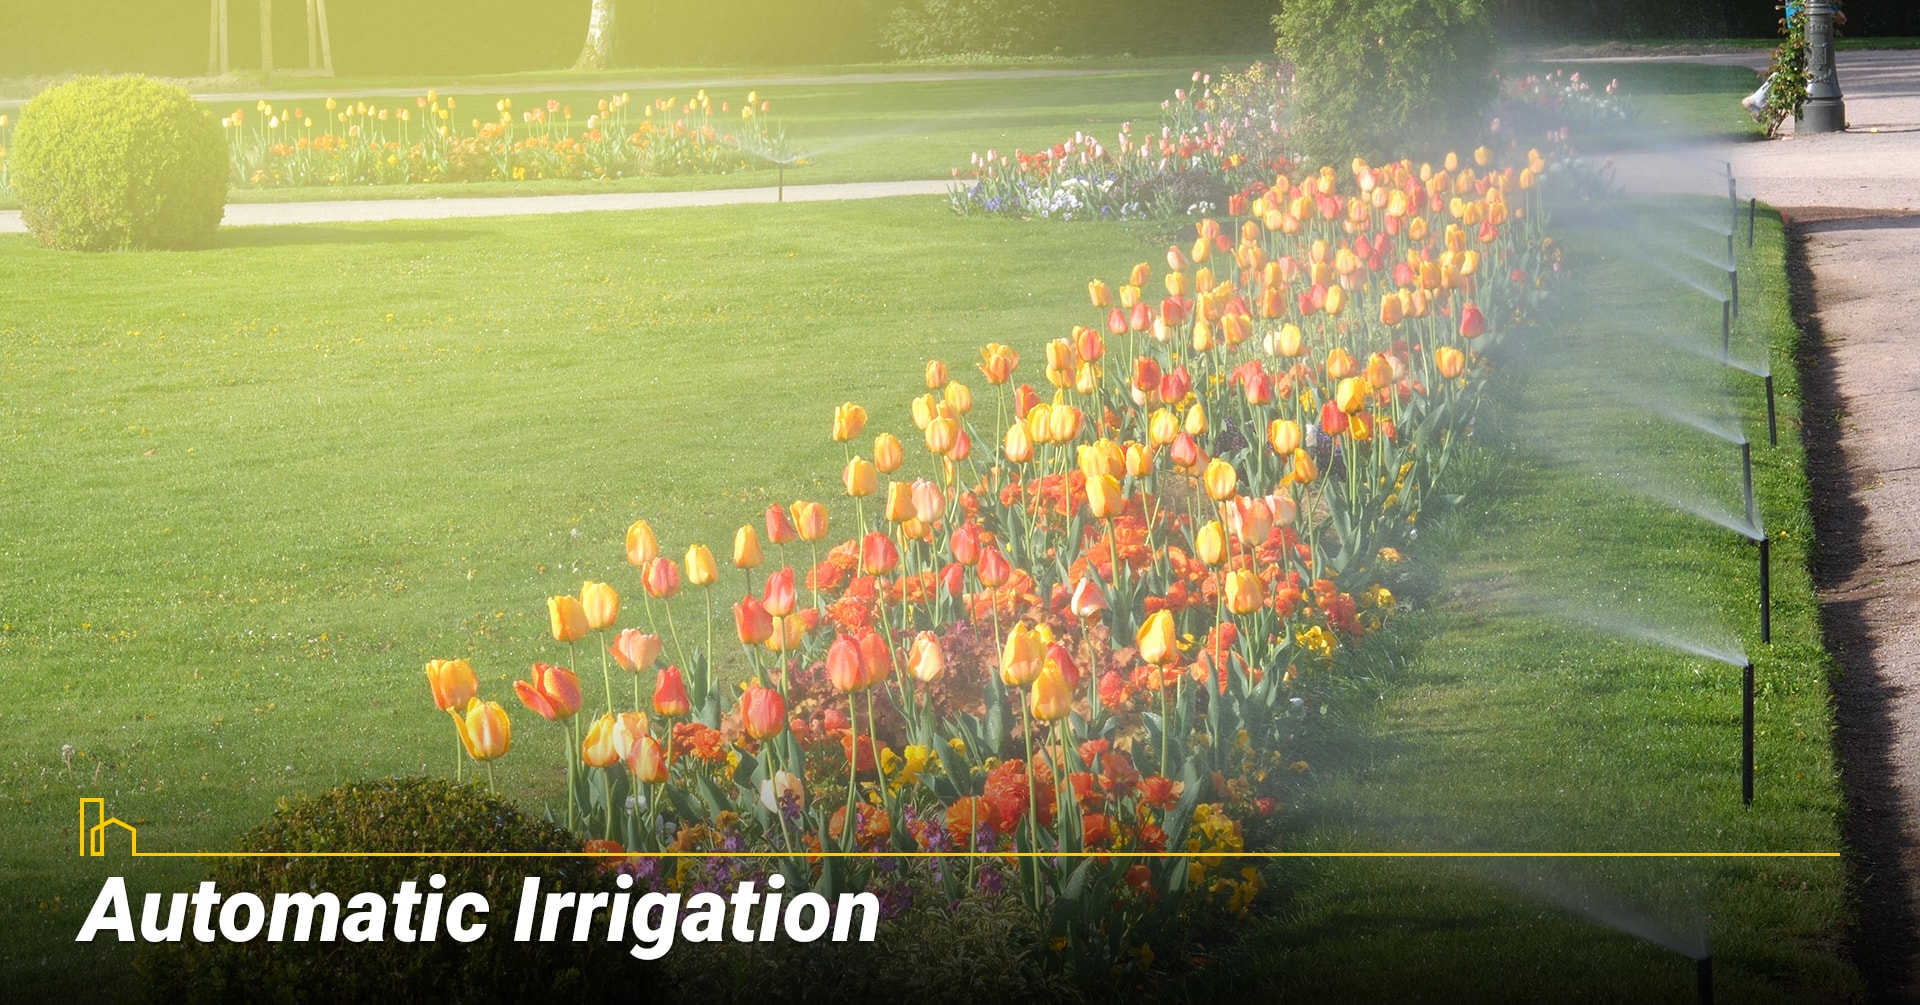 Automatic Irrigation, use automatic system to water your lawn